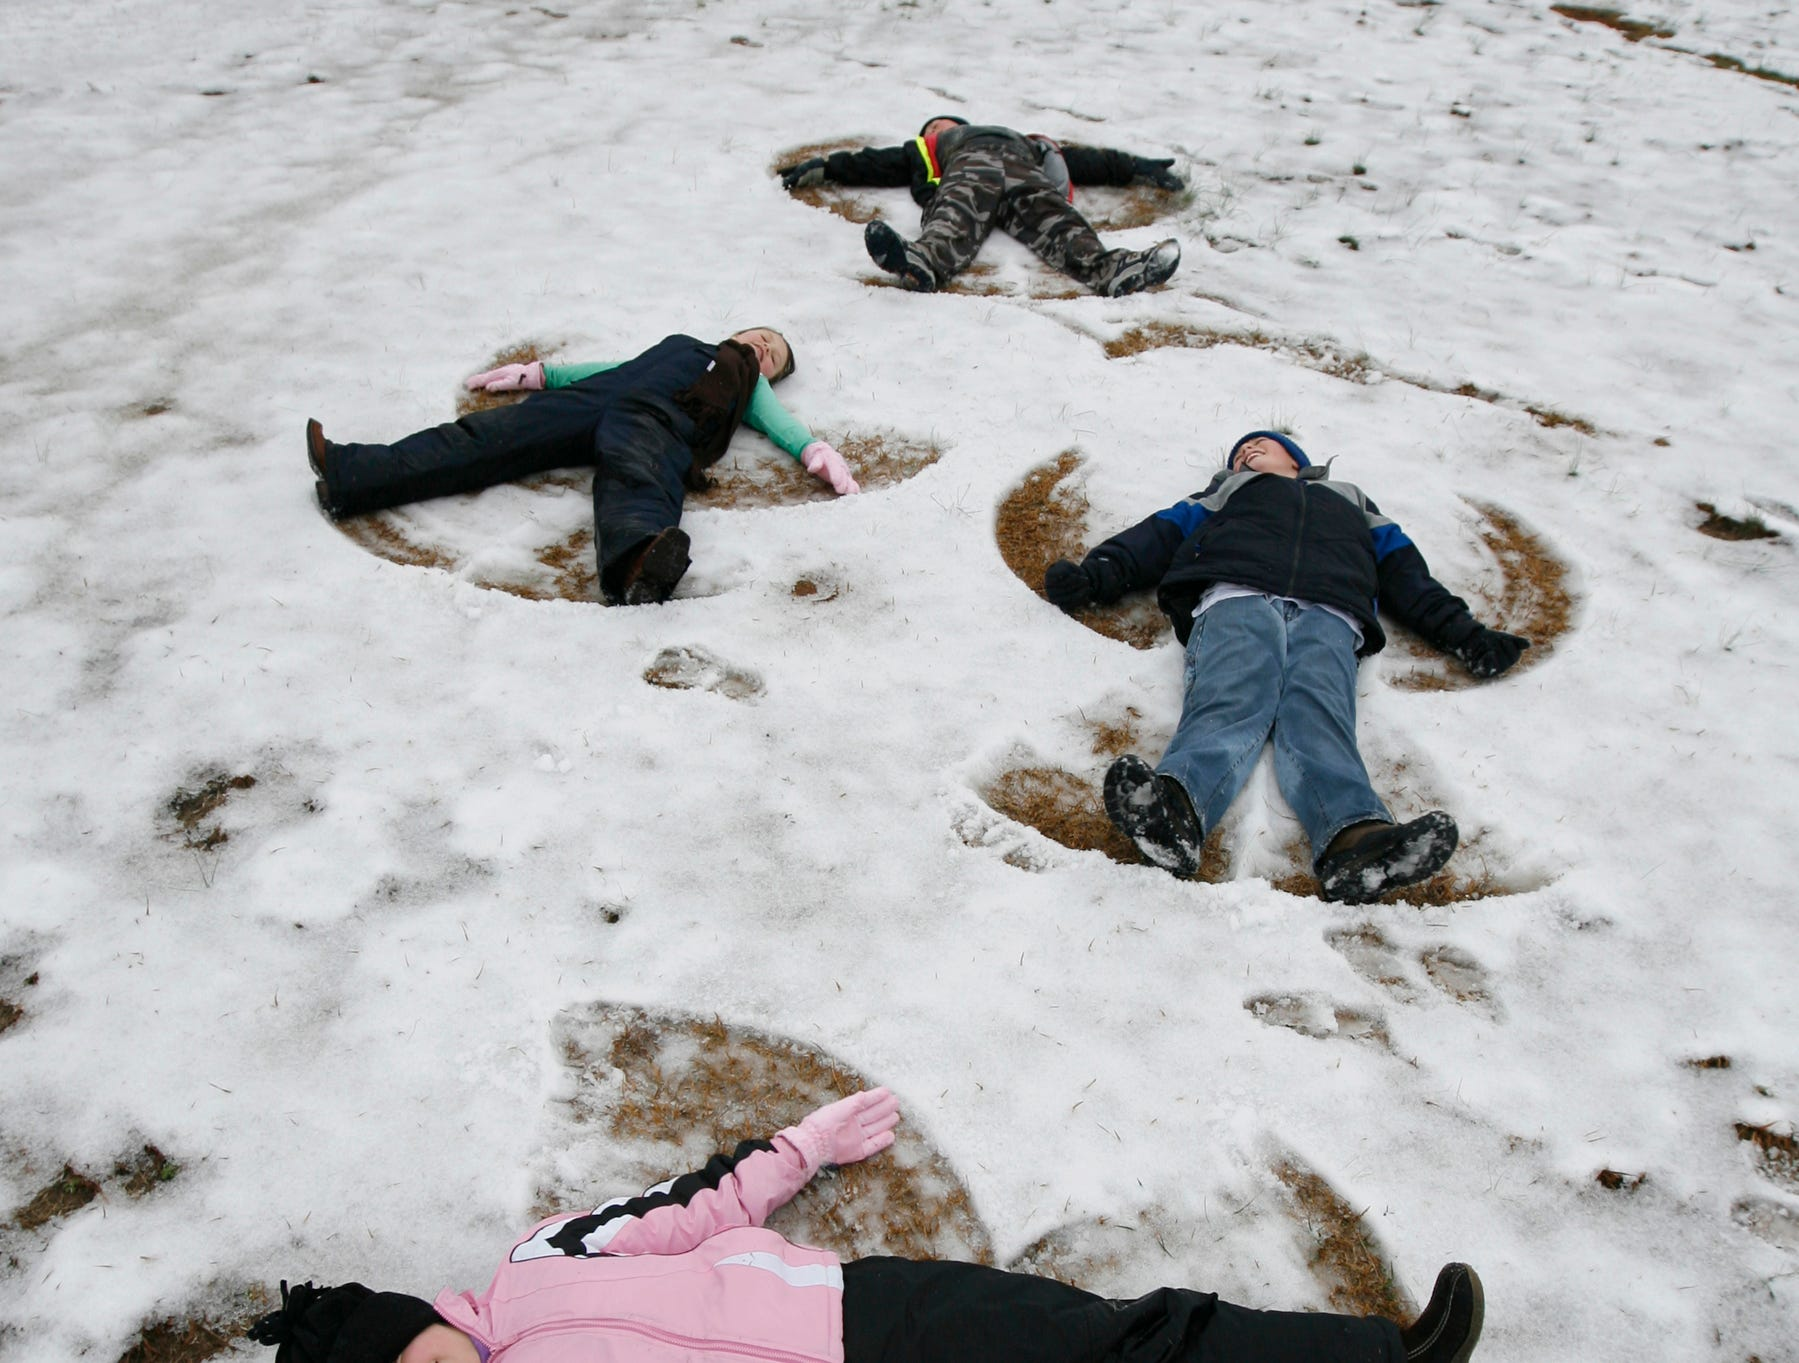 Emily Roesch, below, 10, of Townville makes snow angles with her sister Hannah Roesch, left, 7, neighbors Ethan King, top, 12, and Luke McIntire, right, 10, Thursday morning in Townville in 2008.